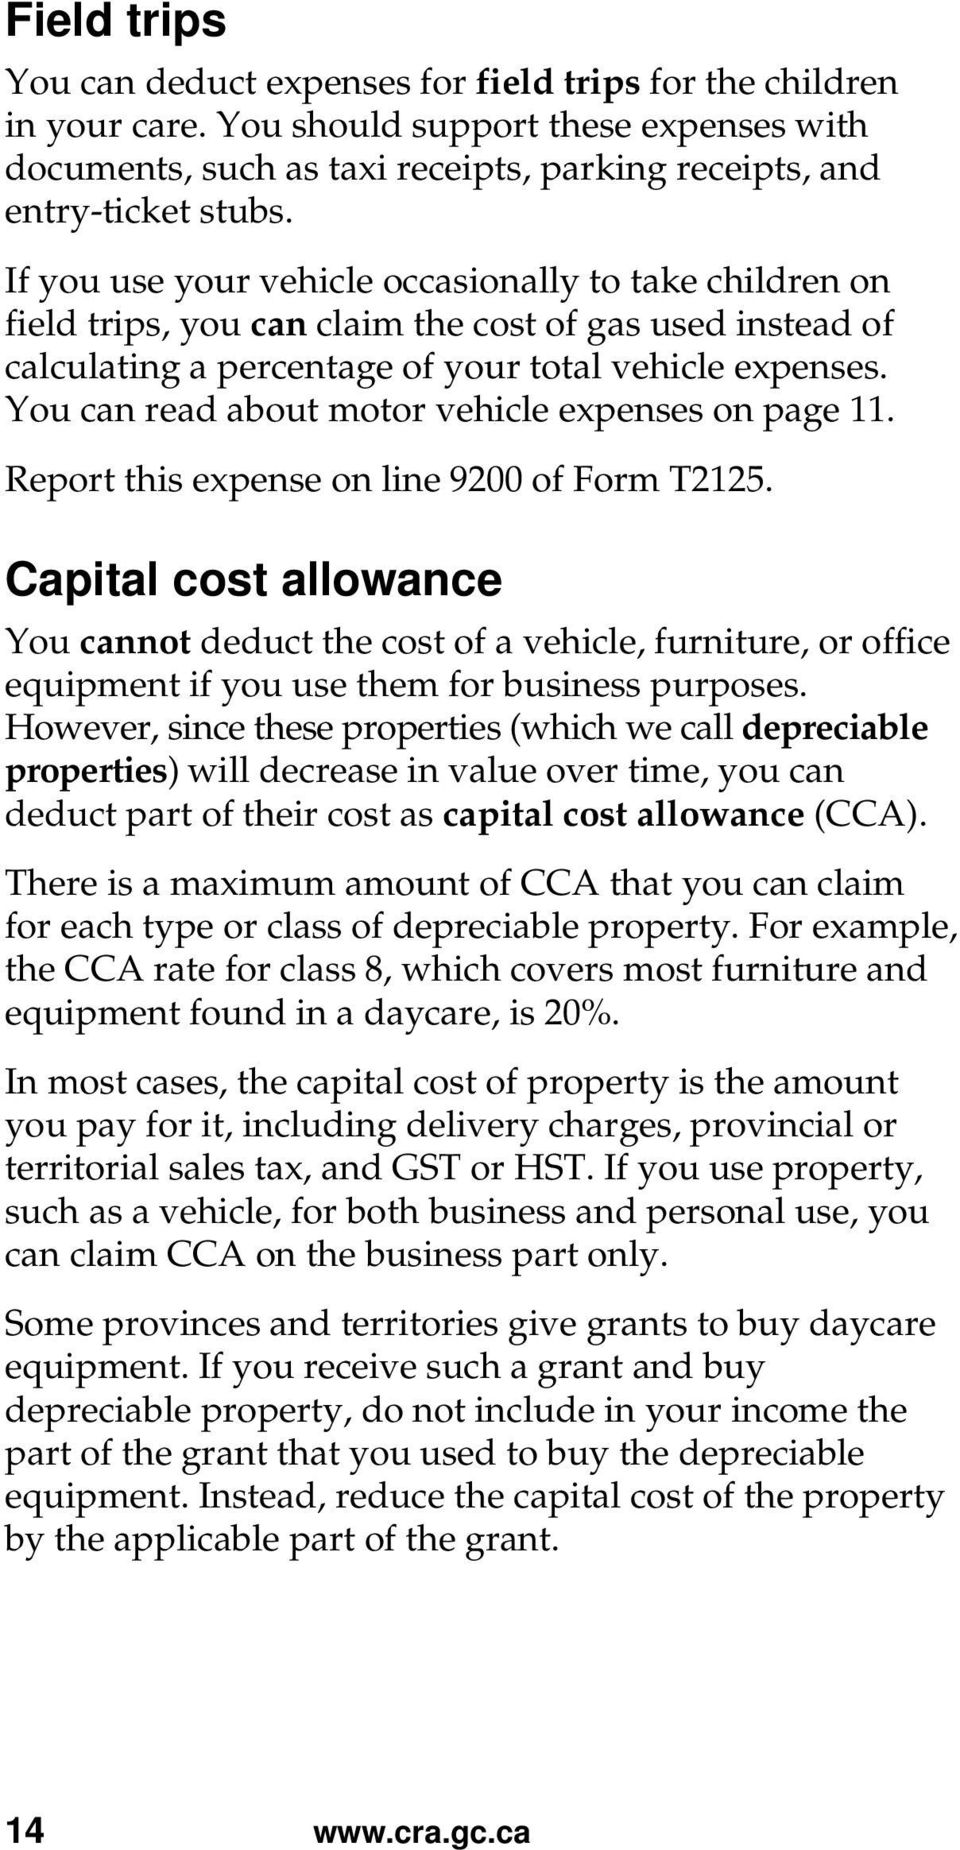 You can read about motor vehicle expenses on page 11. Report this expense on line 9200 of Form T2125.